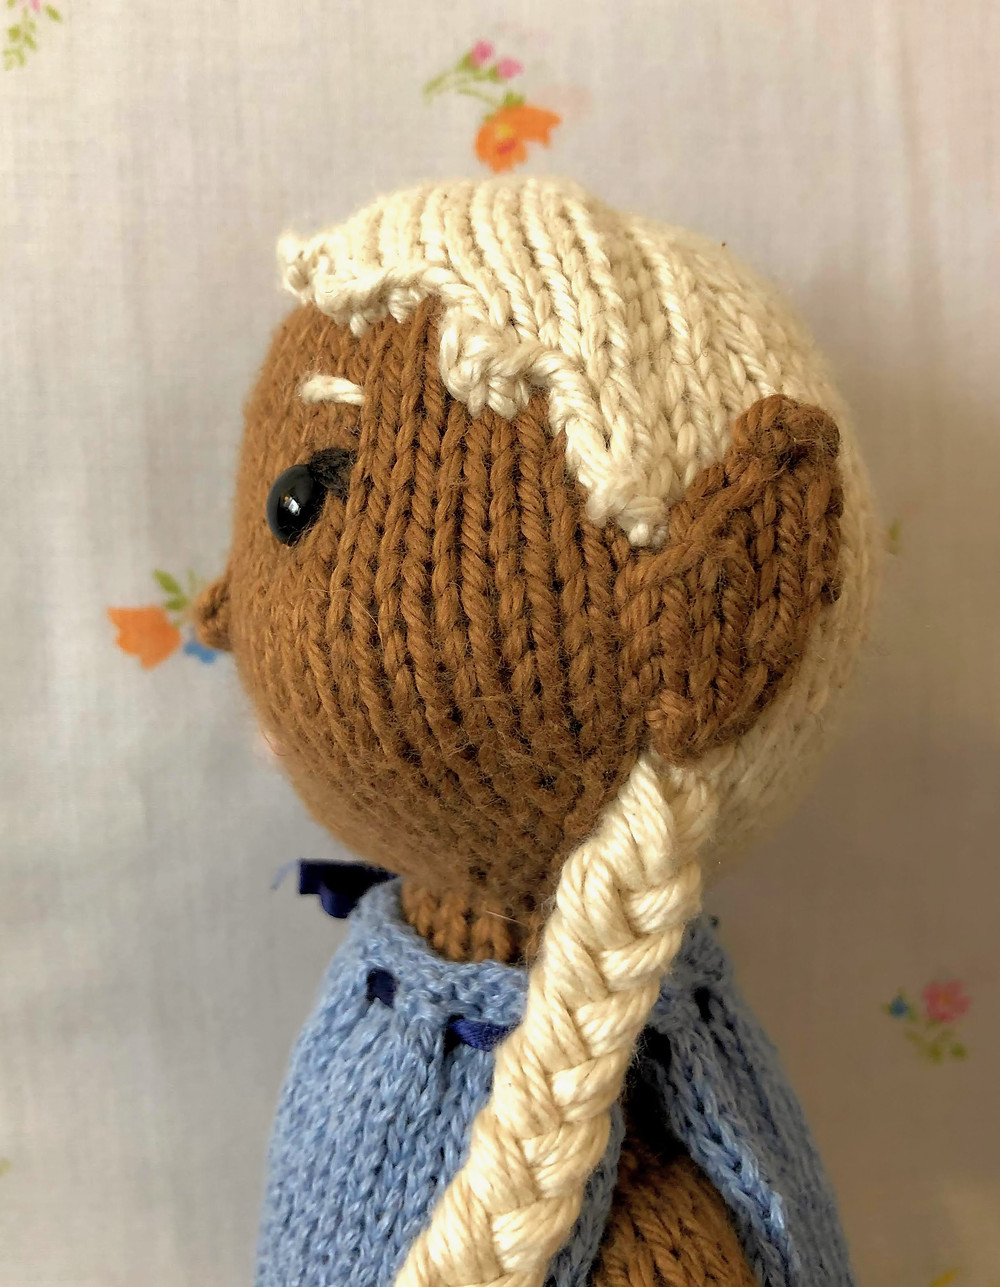 Side view of white haired Elf doll showing single-layer ear style.